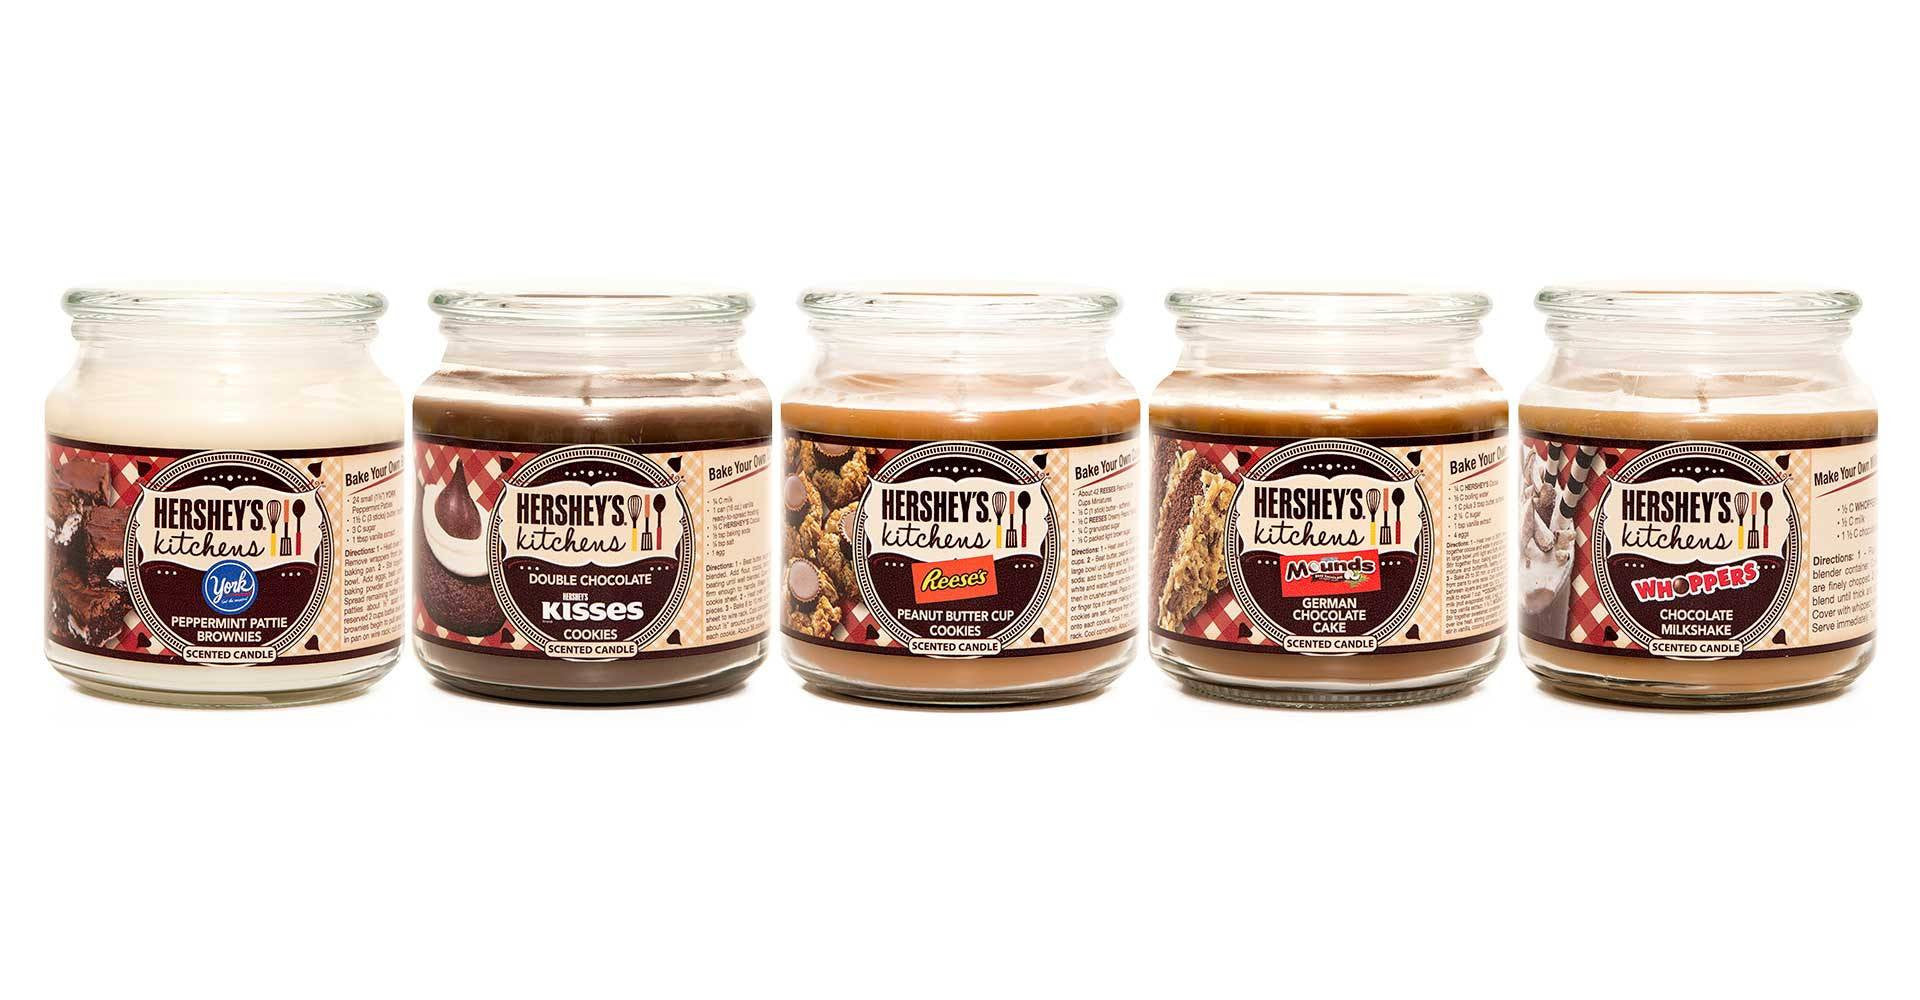 Hershey's Whoppers Chocolate Milkshake Scented Wax Candle - Candlemart.com